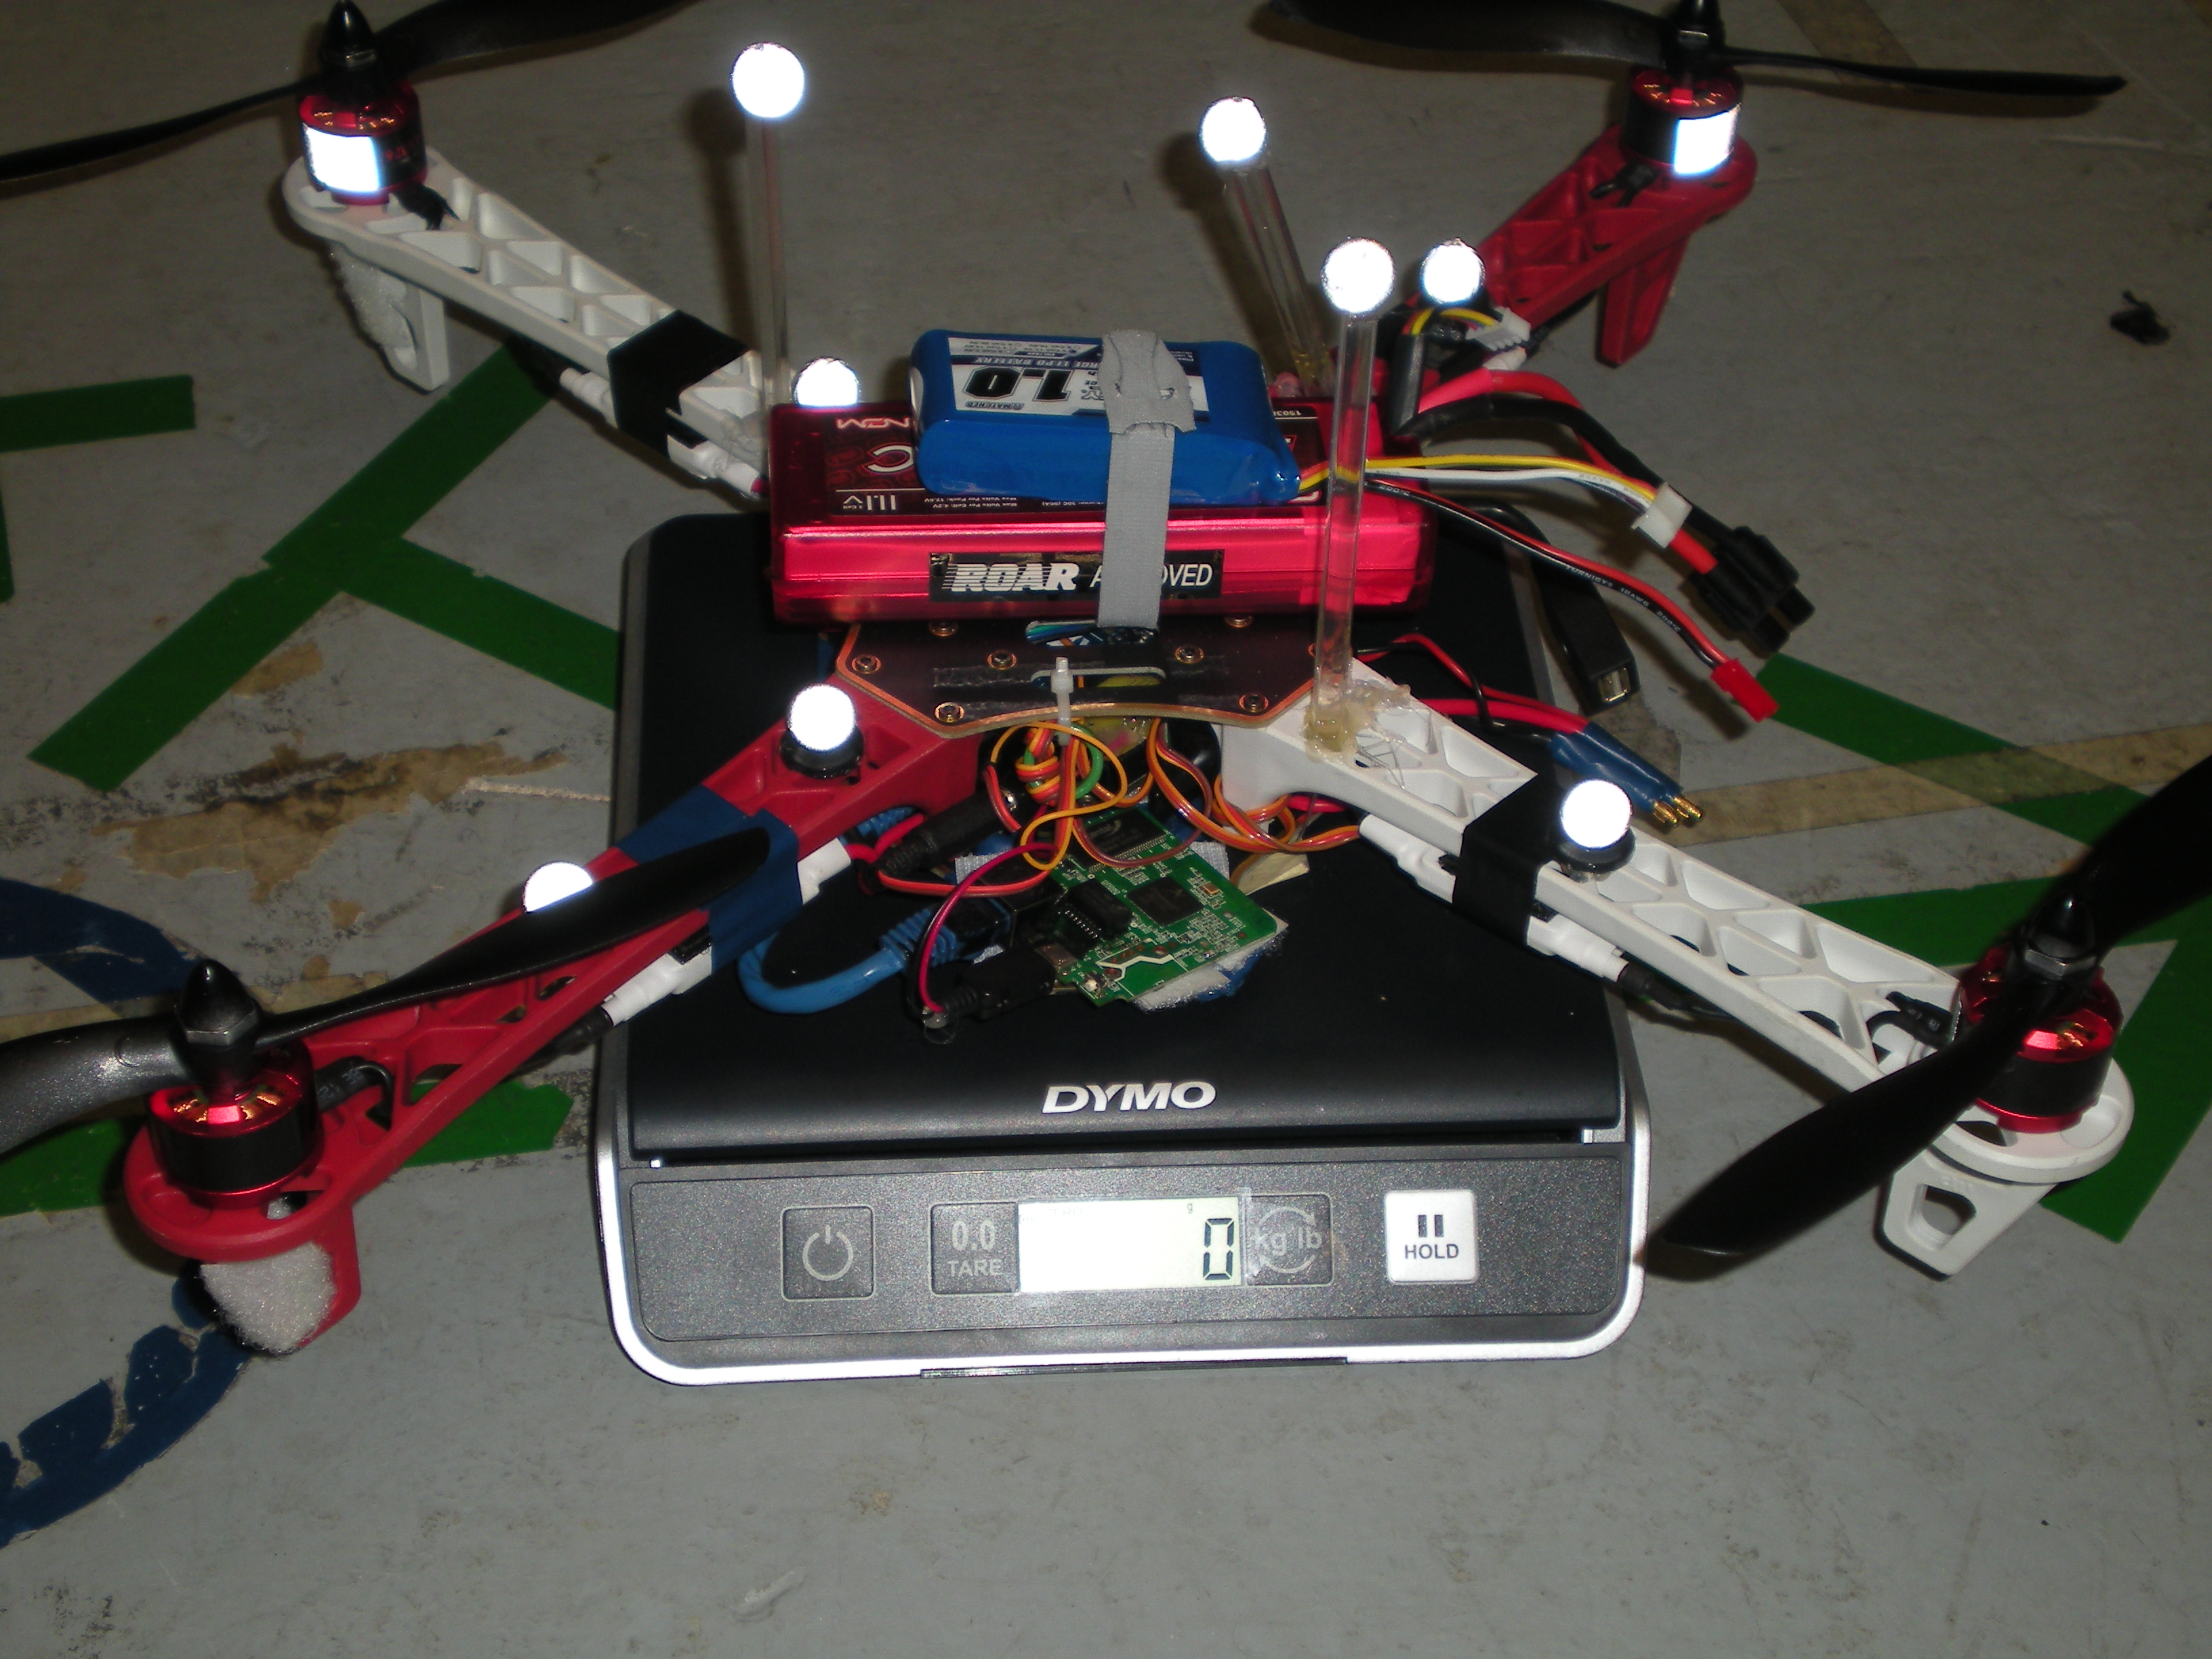 Pwm To Force Calibration Bbb Quadrotor Quadcopter Uncertainty Wiring Diagram Converted The Required That Has Be Applied I Have Used A Simple Weight Scale Calculate Or Lift Figures Below Show My